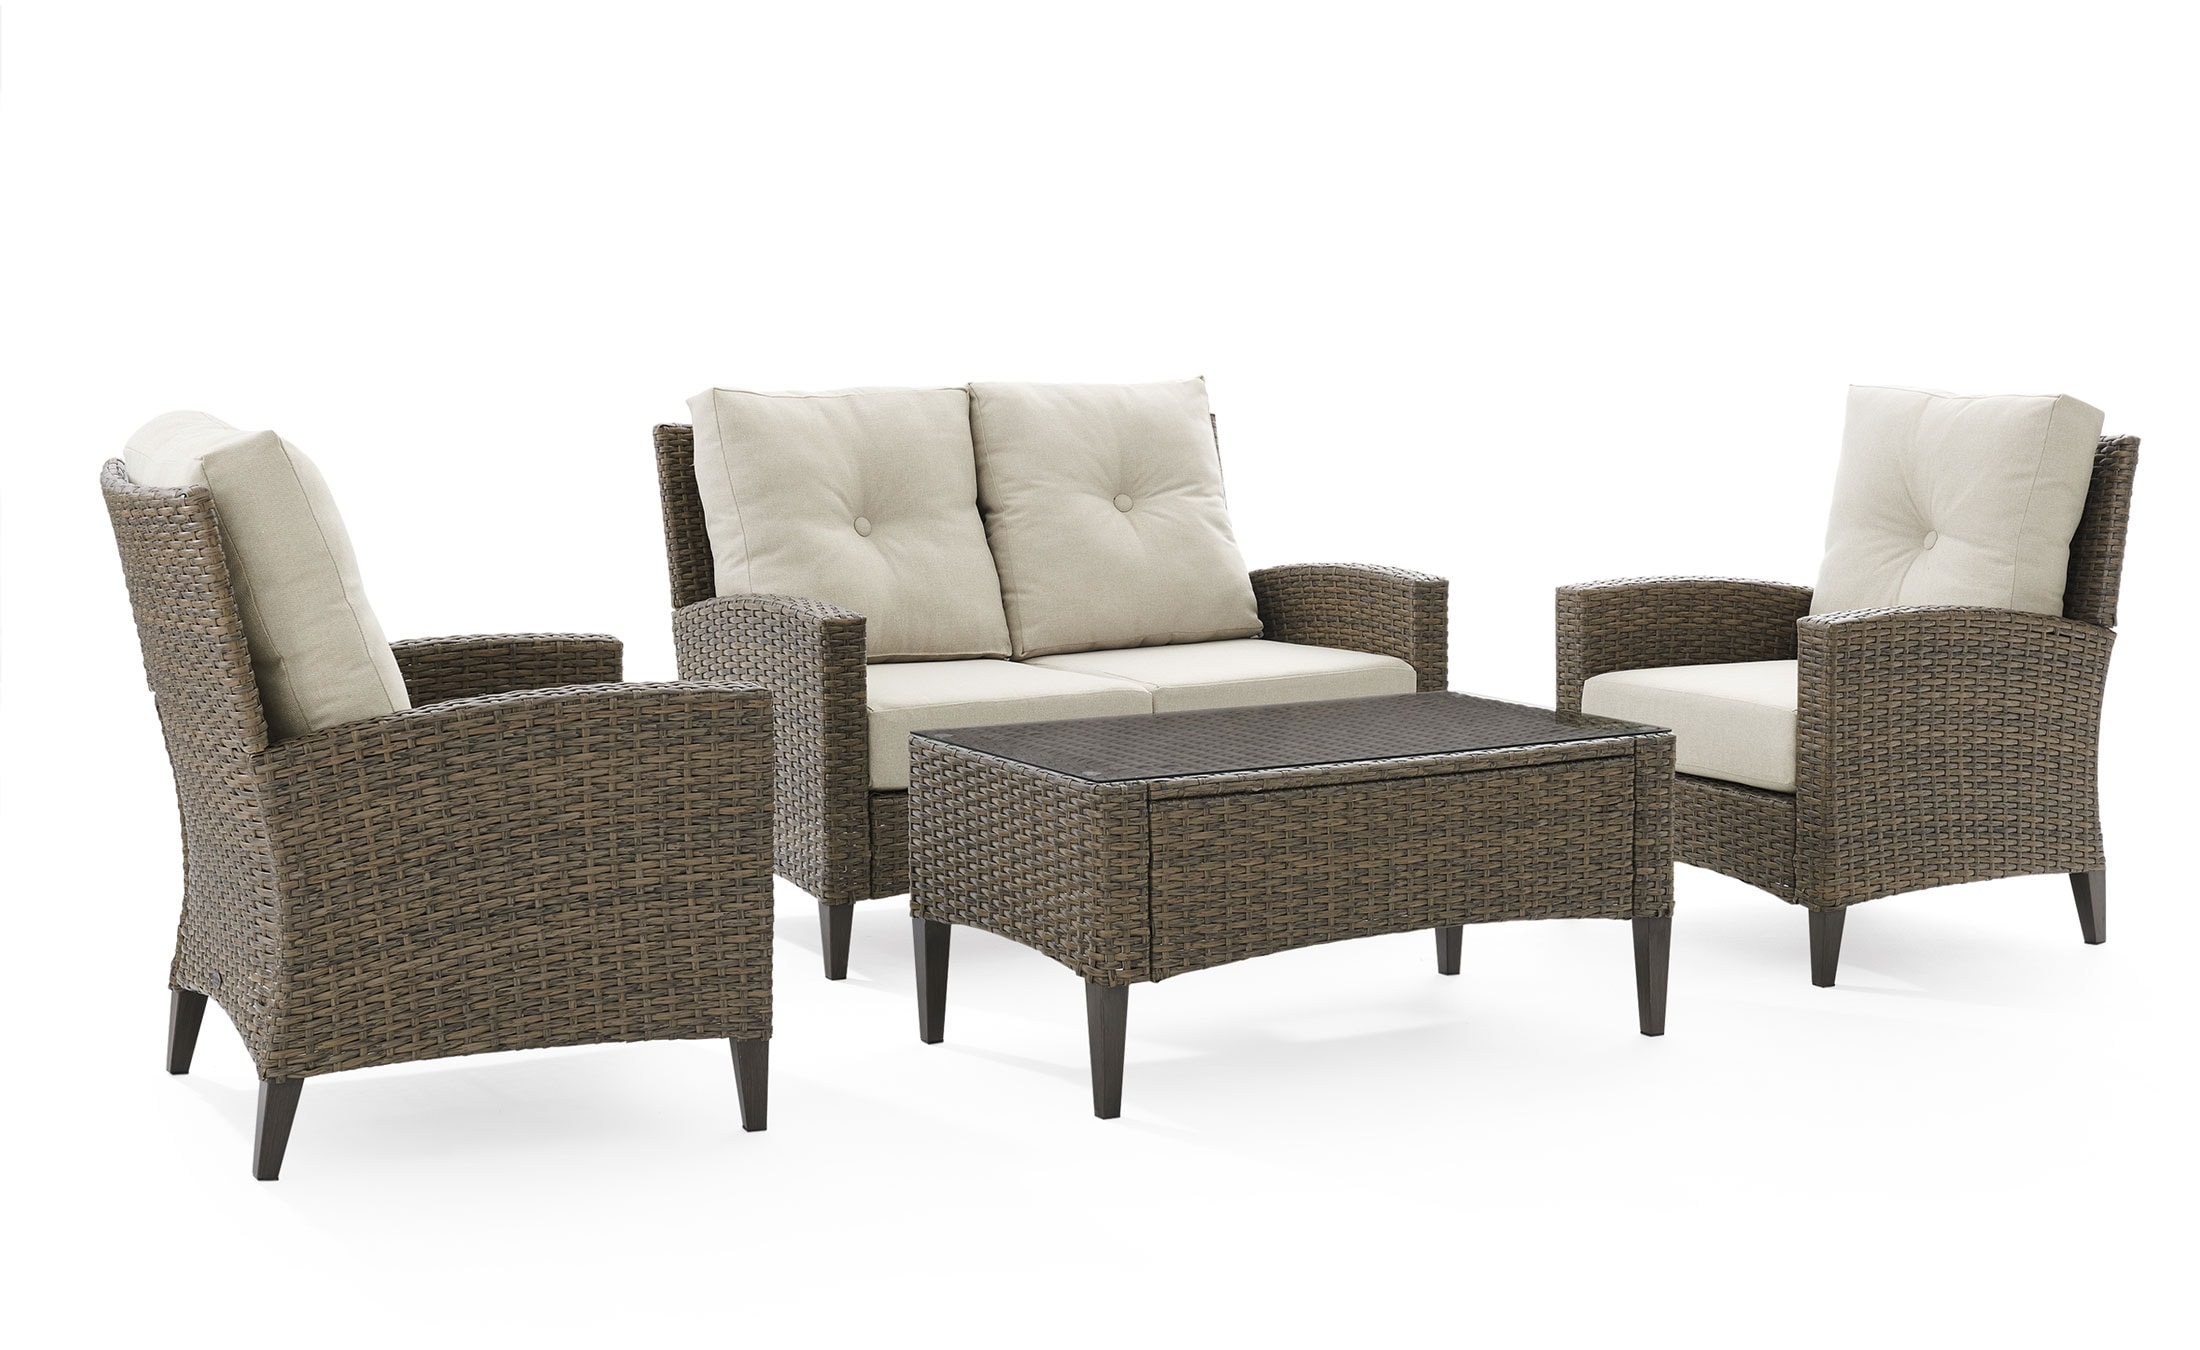 Outdoor Furniture - Huron Outdoor Loveseat, Set of 2 Chairs and Coffee Table